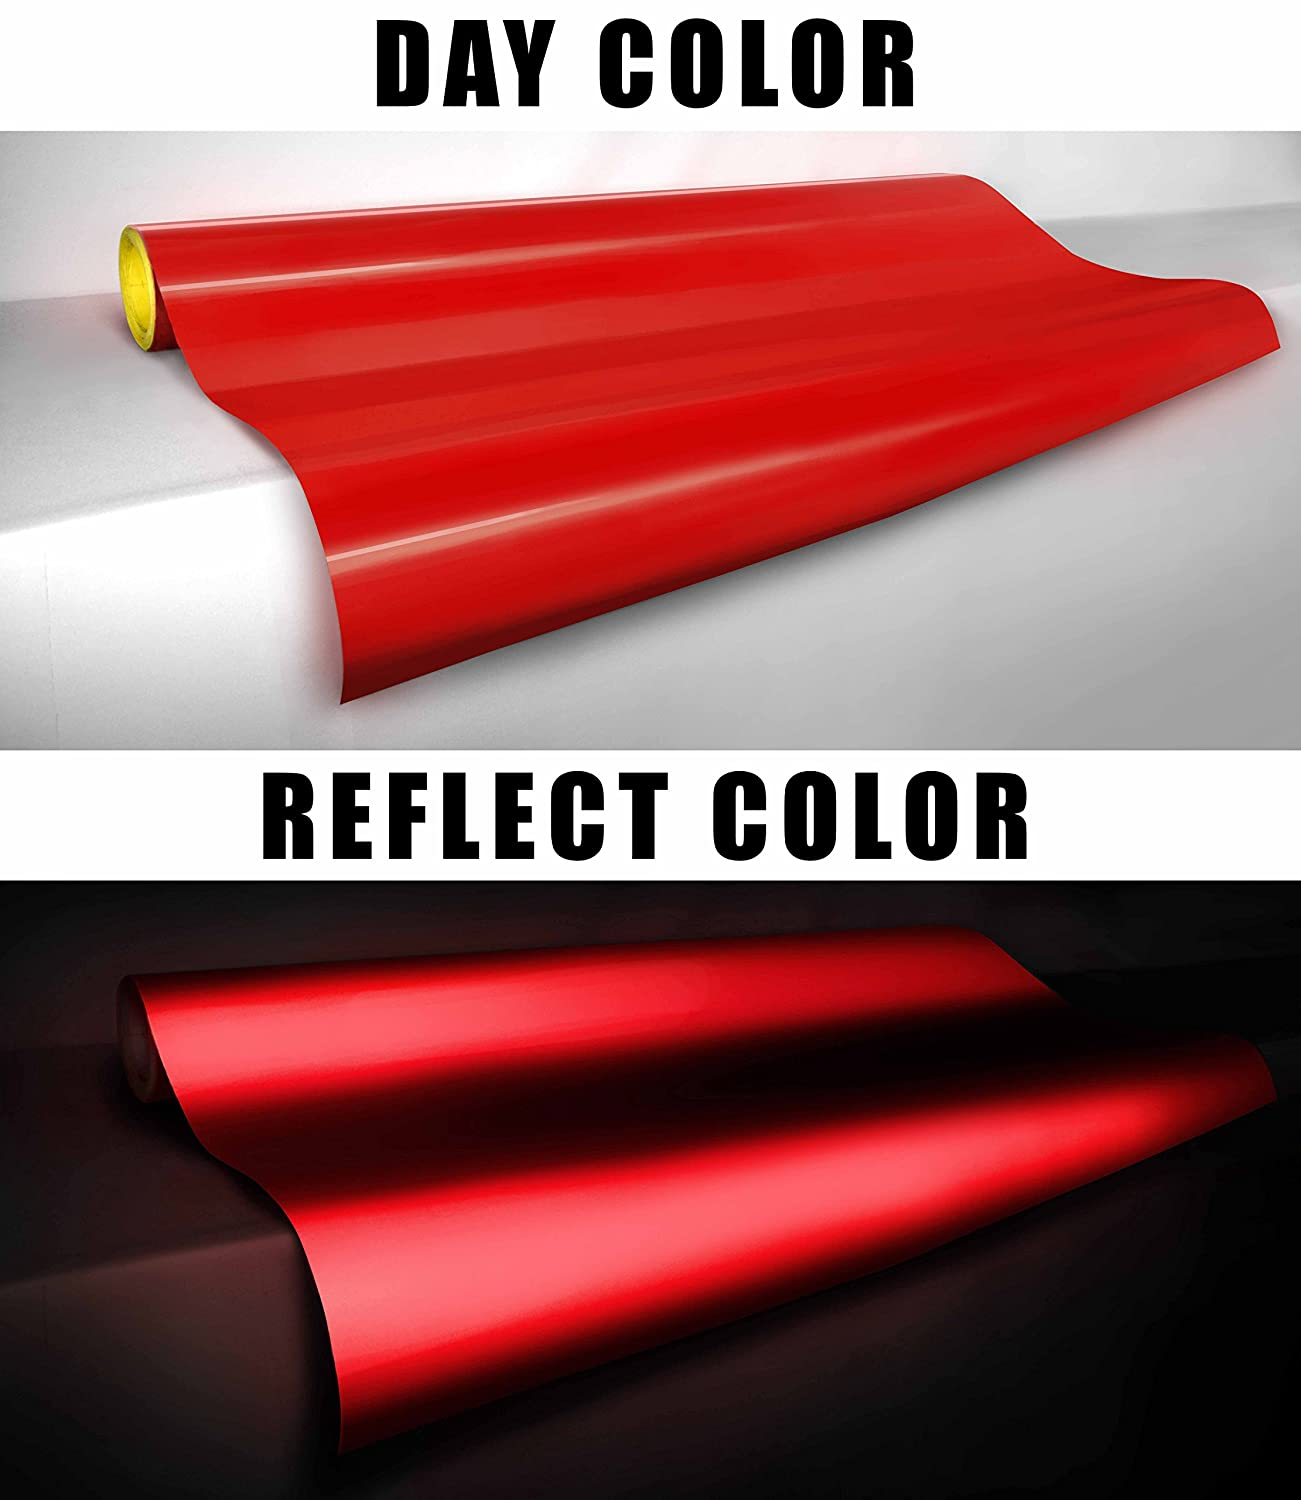 2ft x 48 VViViD Reflective Gloss Red Vinyl Car Wrap Film DIY Roll Easy to Install No-Mess Decal